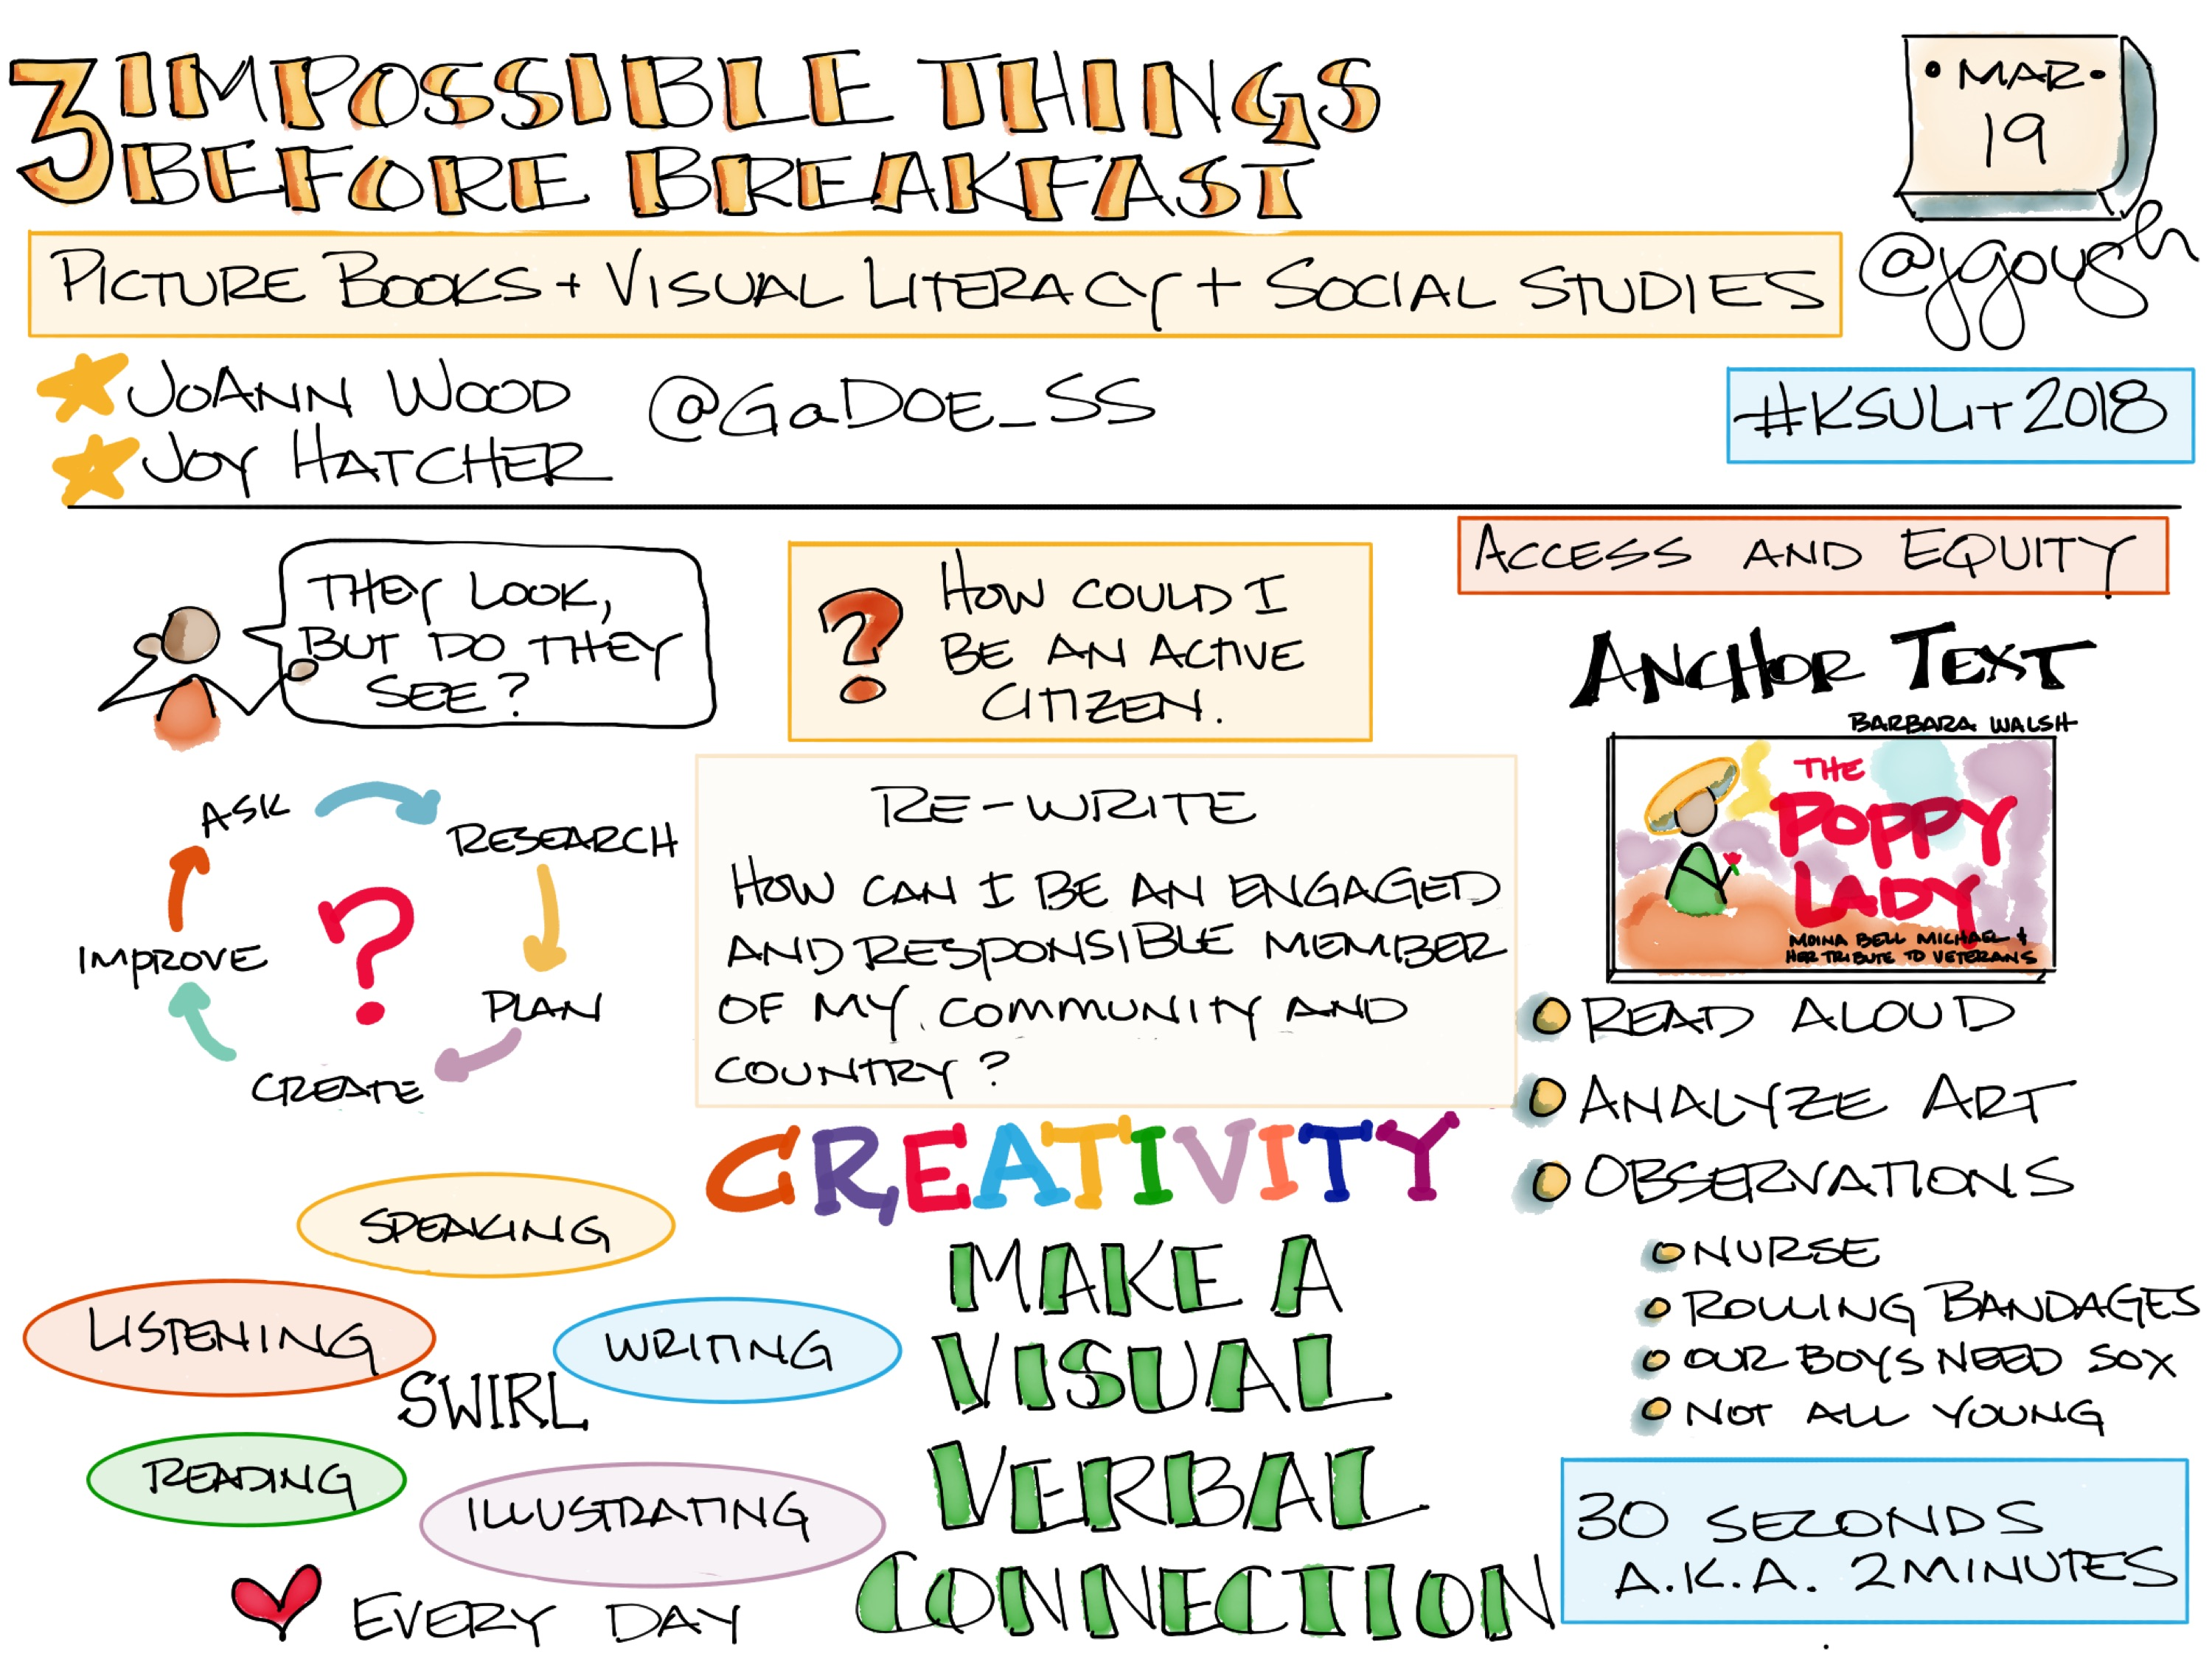 3 Impossible Things Before Breakfast: Picture Books + Visual Literacy + Social Studies from @GaDoe_SS #KSULit2018